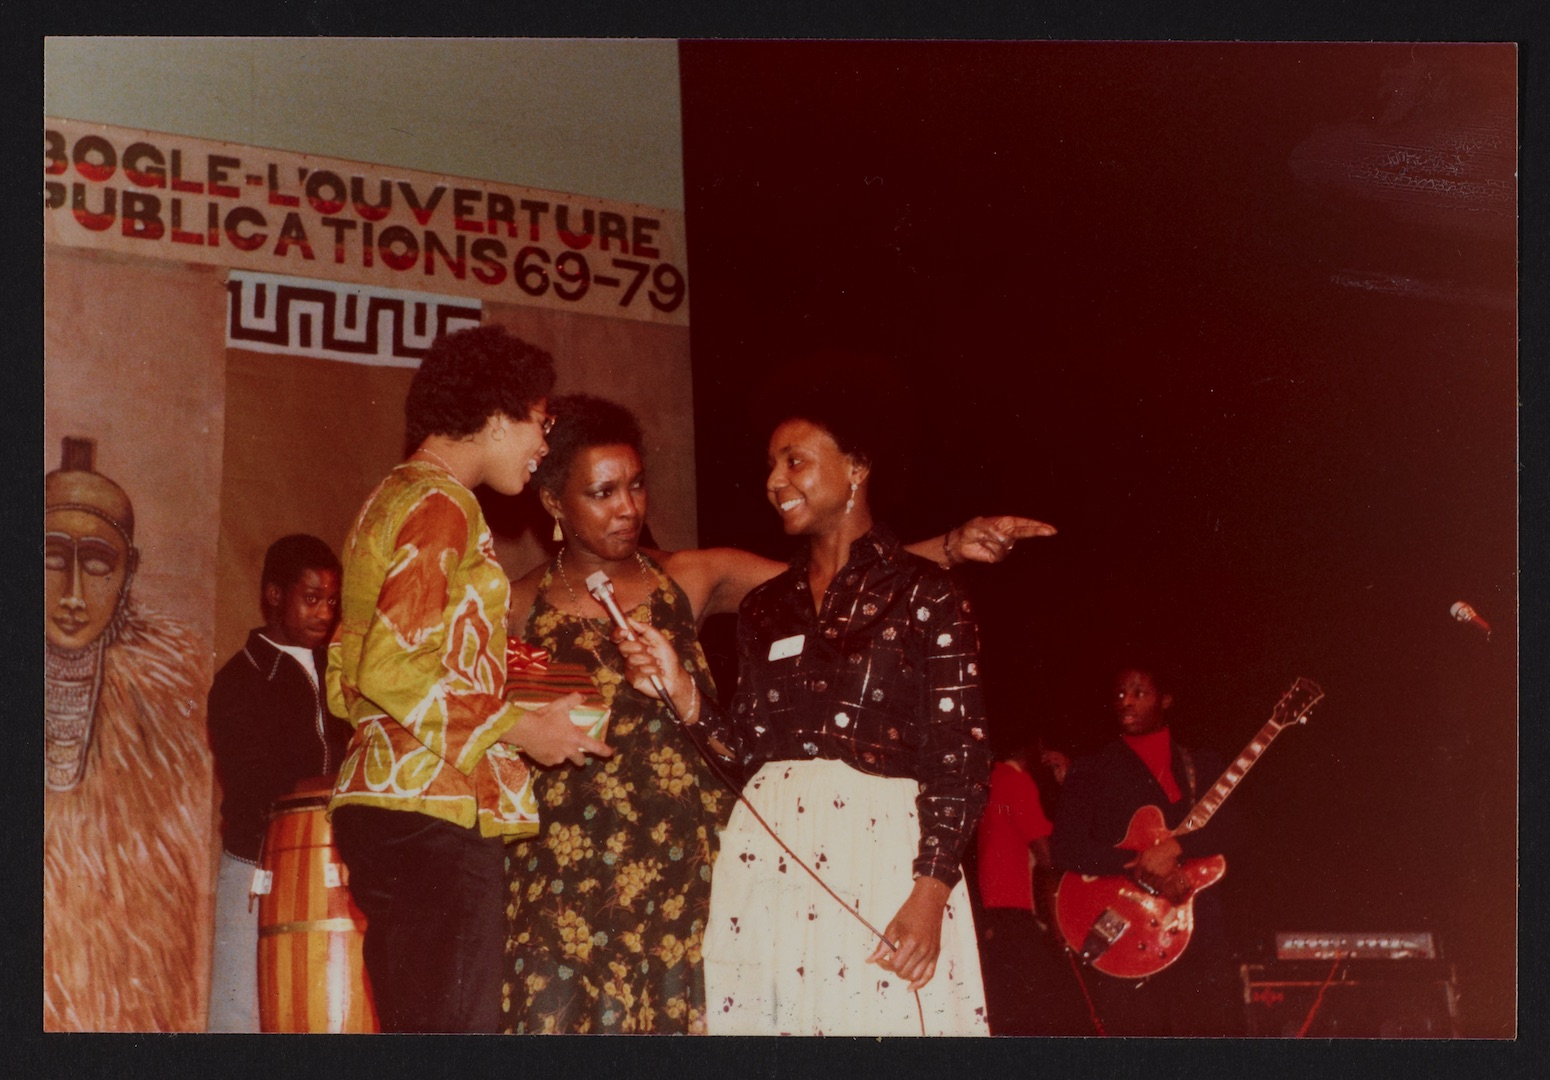 03 Carmen Munroe (middle) at Bogle-L'Ouverture Publications 10th Anniversary event. 1979. Huntley Ar